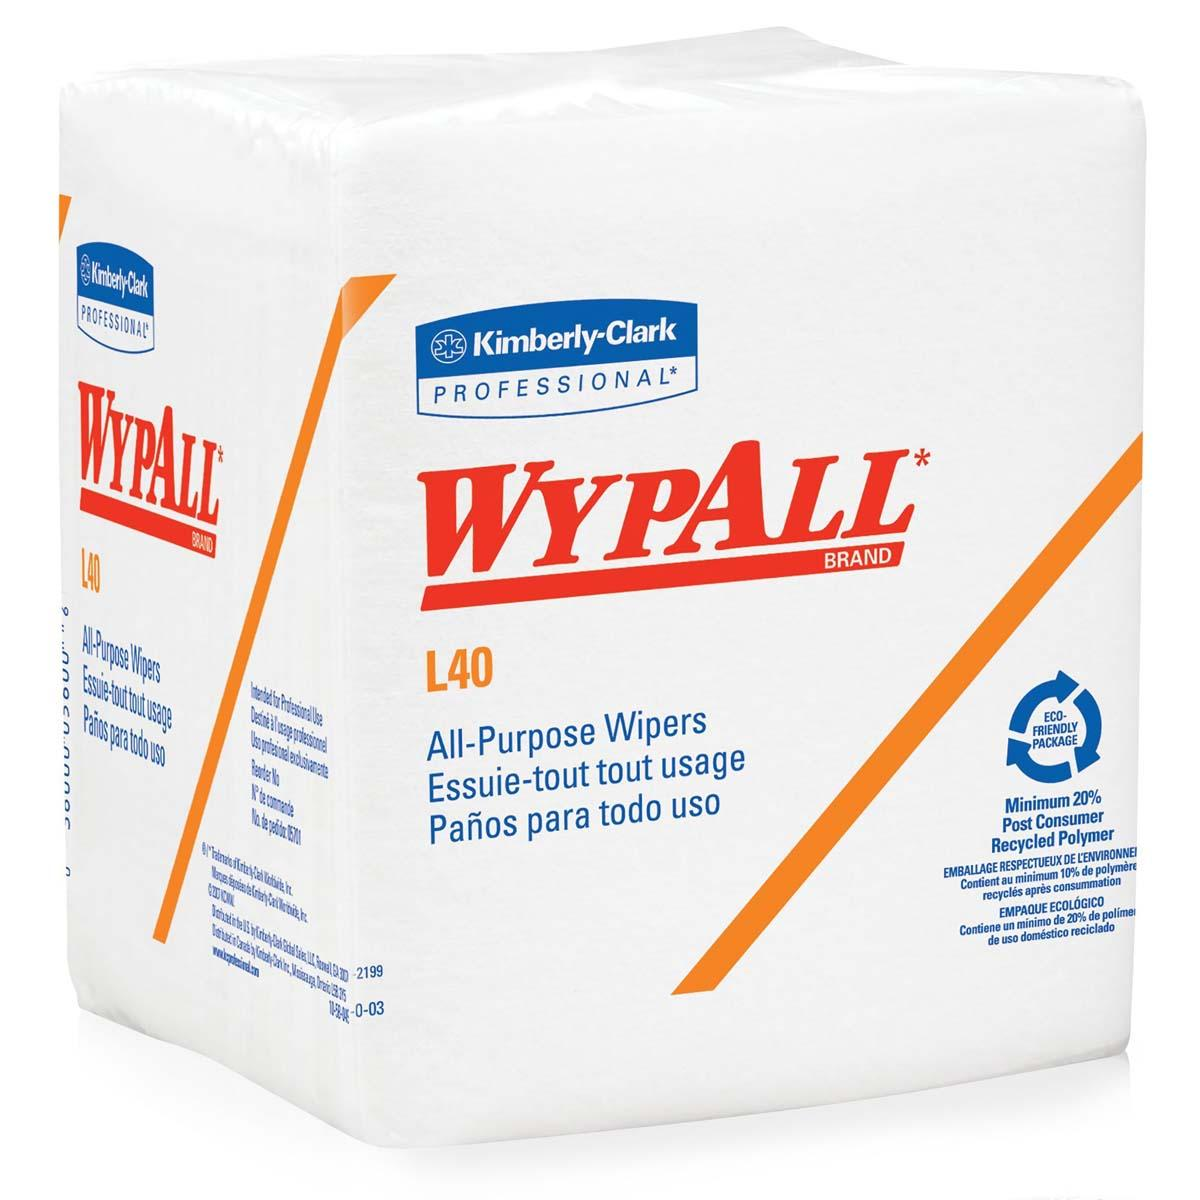 WypAll L40 Disposable Cleaning and Drying Towels (05701), Limited Use Wipers, White,18 Packs per Case, 56 Sheets per Pack, 1,008 Sheets Total